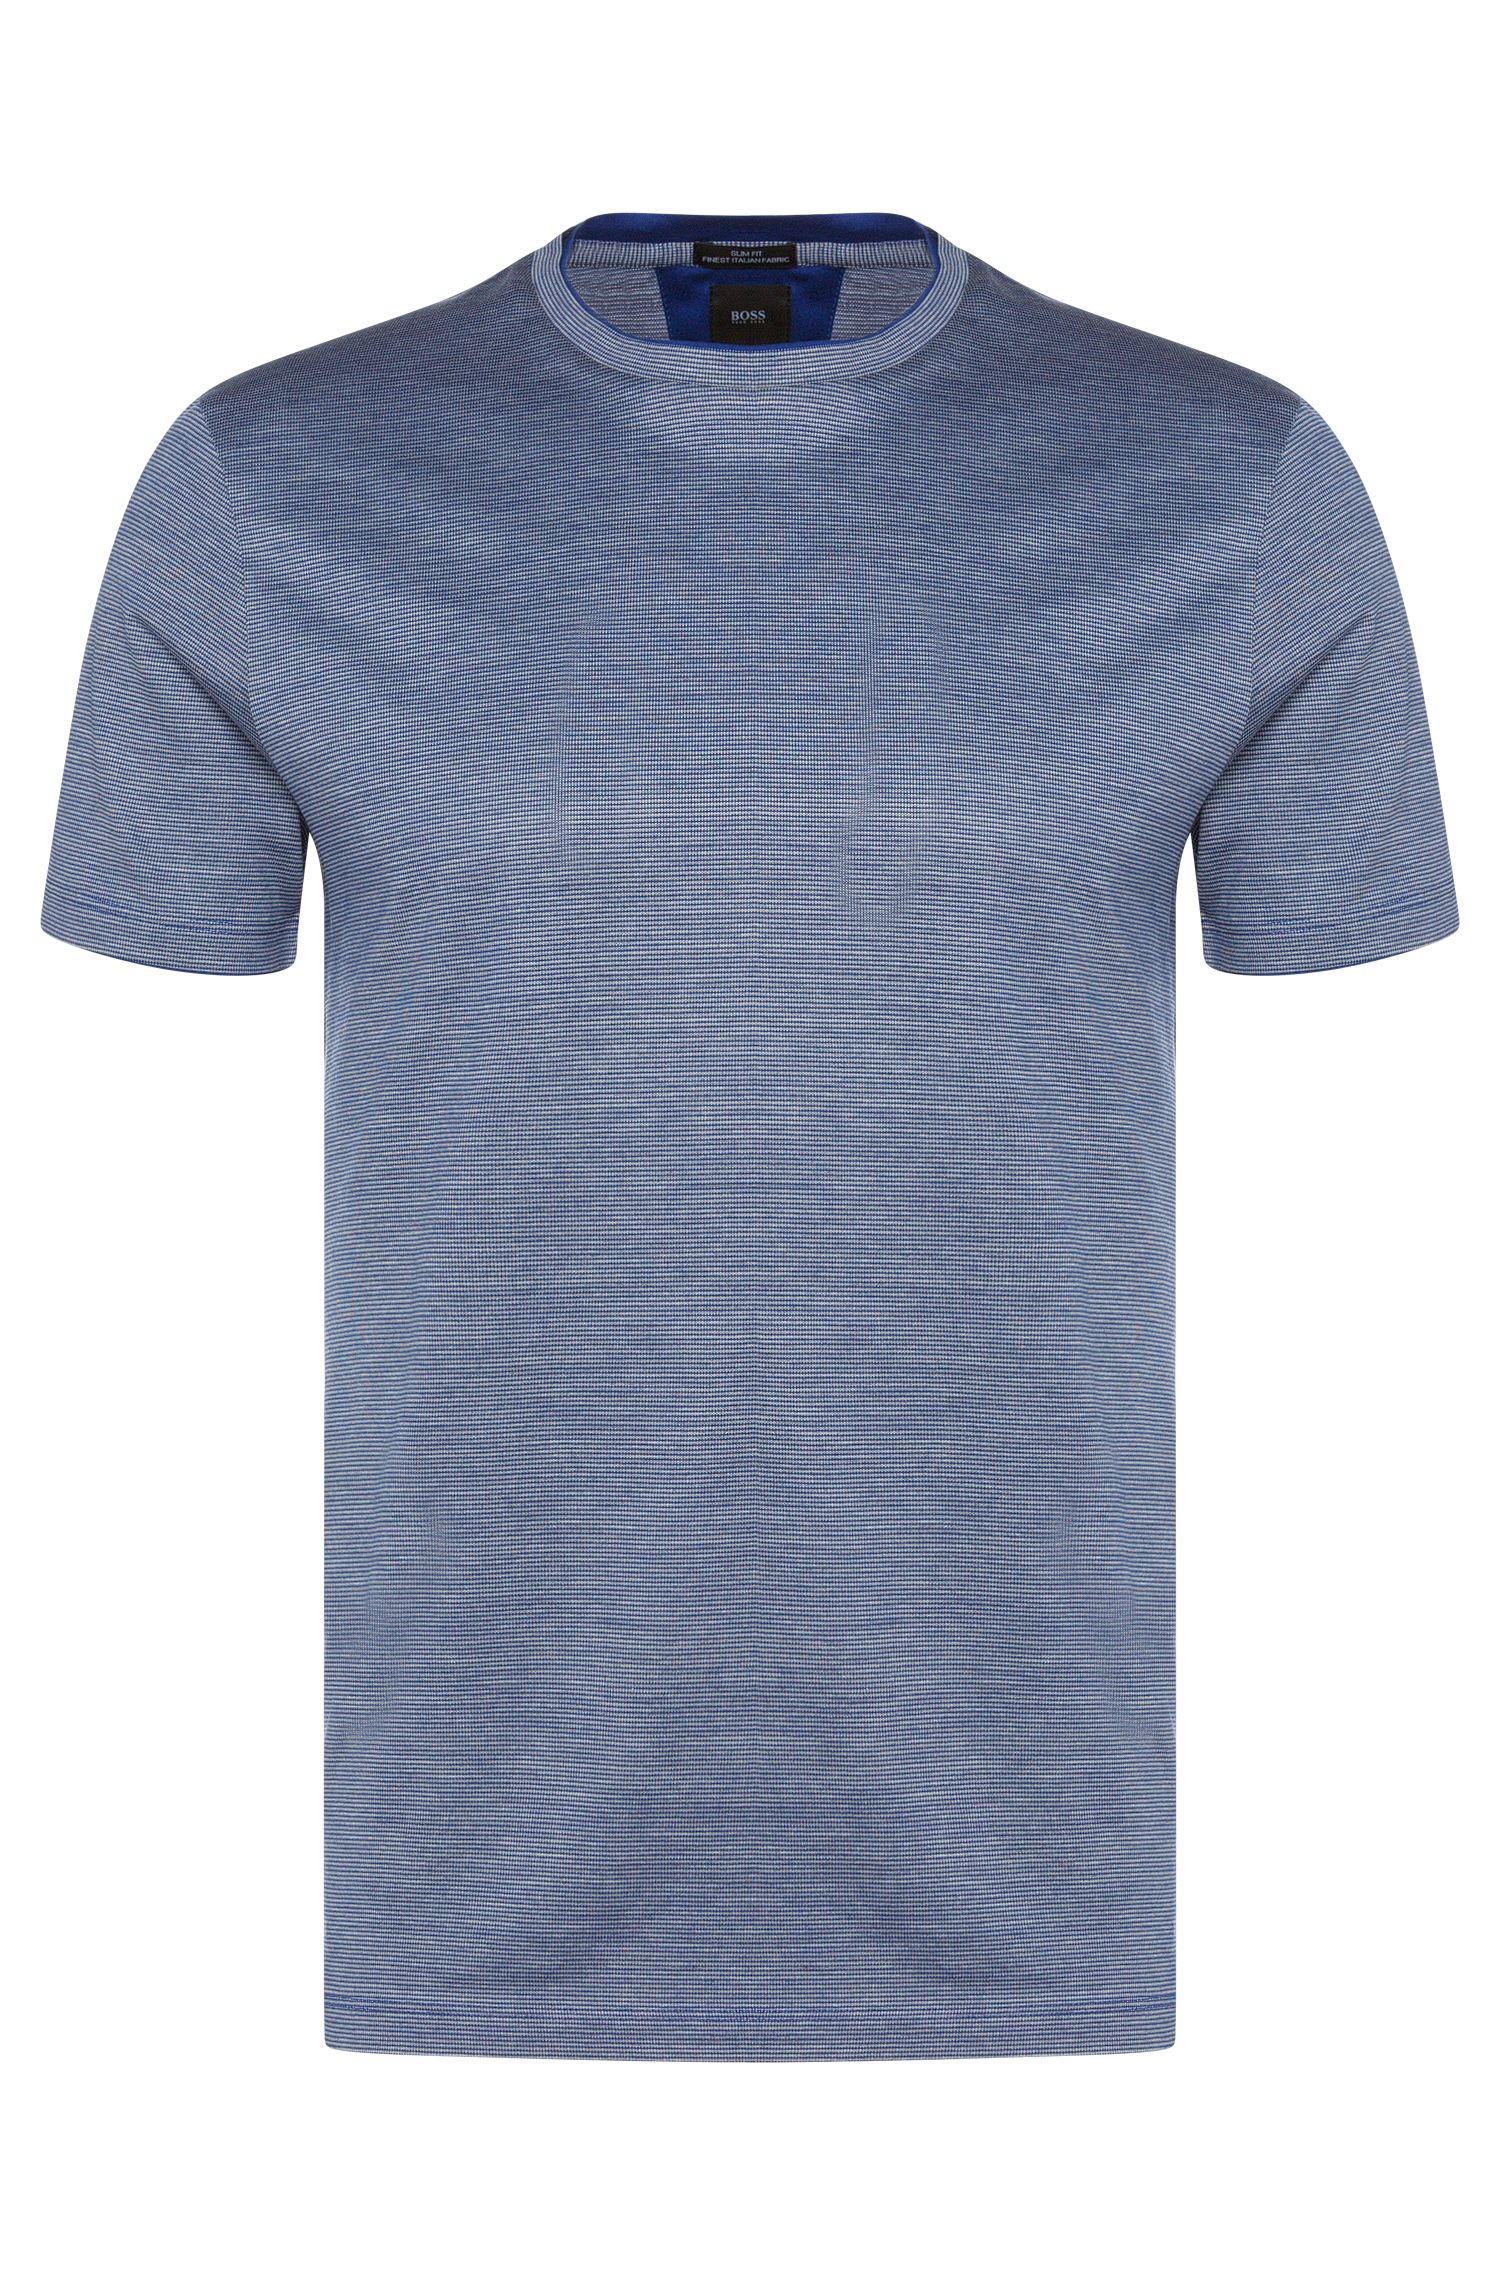 Gestreiftes Slim-Fit Tailored T-Shirt aus Seiden-Mix: 'T-Tribel 18'